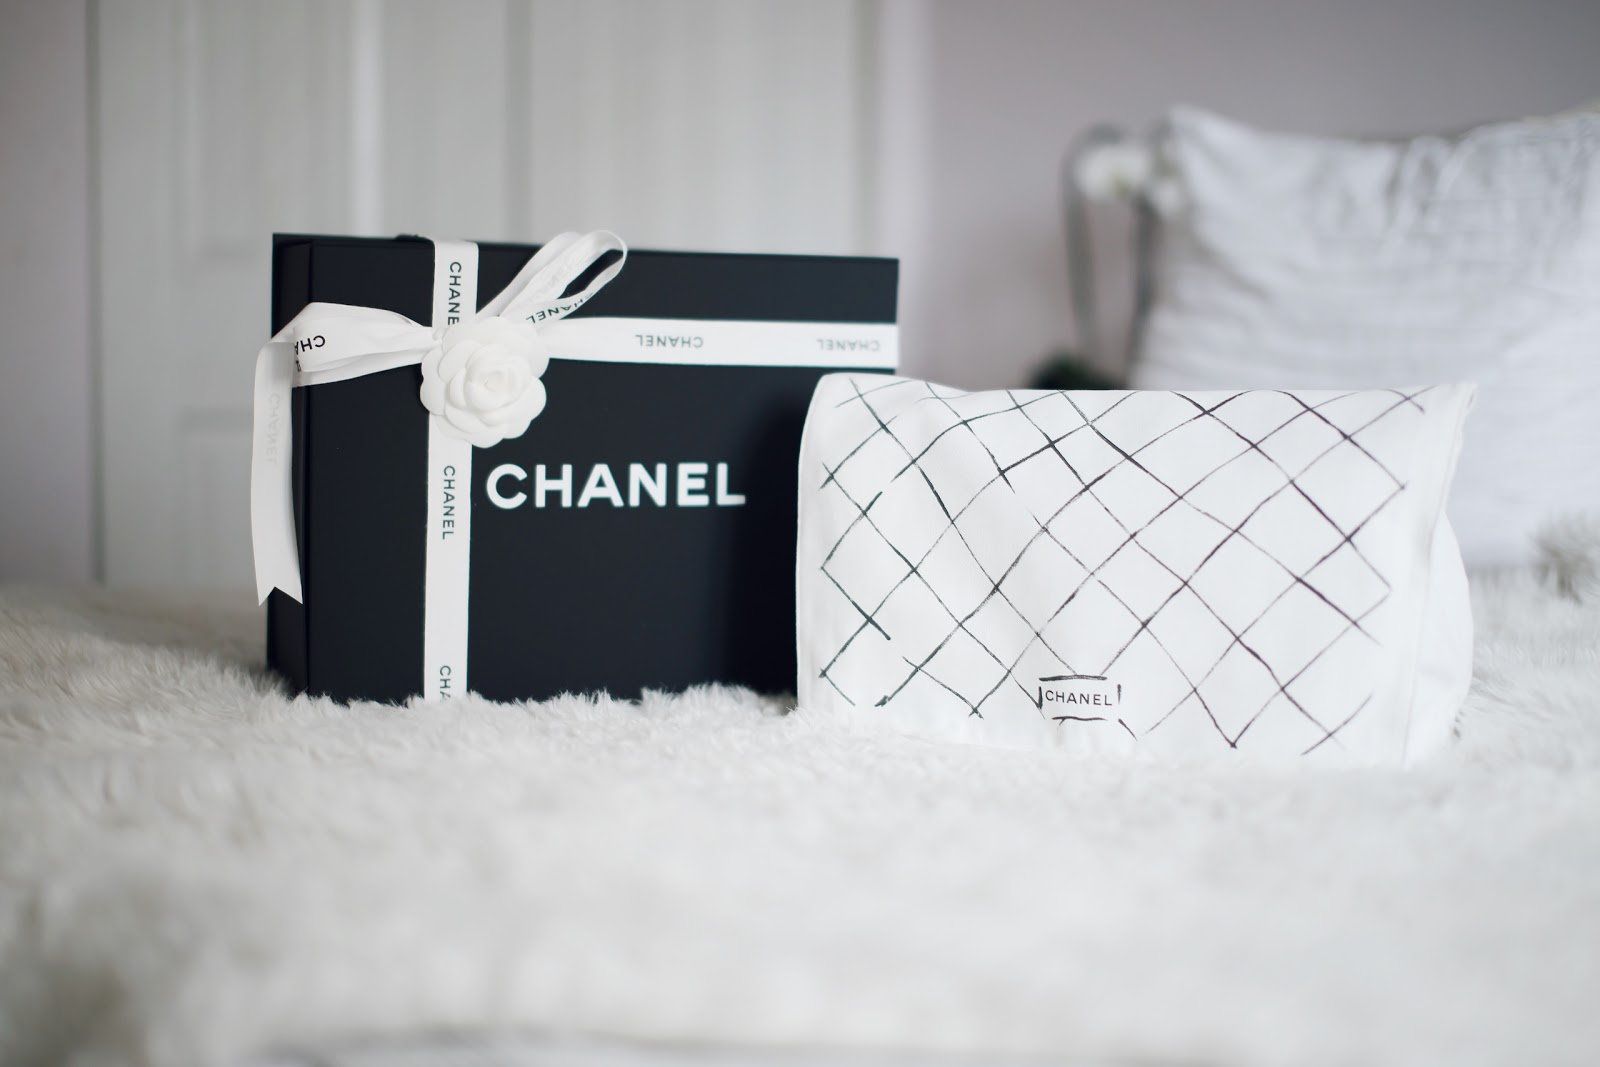 59994887989e The Chanel Classic Flap is one of the most iconic handbags ever made and  there's a reason why. Over the past few years, many agree that Chanel  handbags are ...